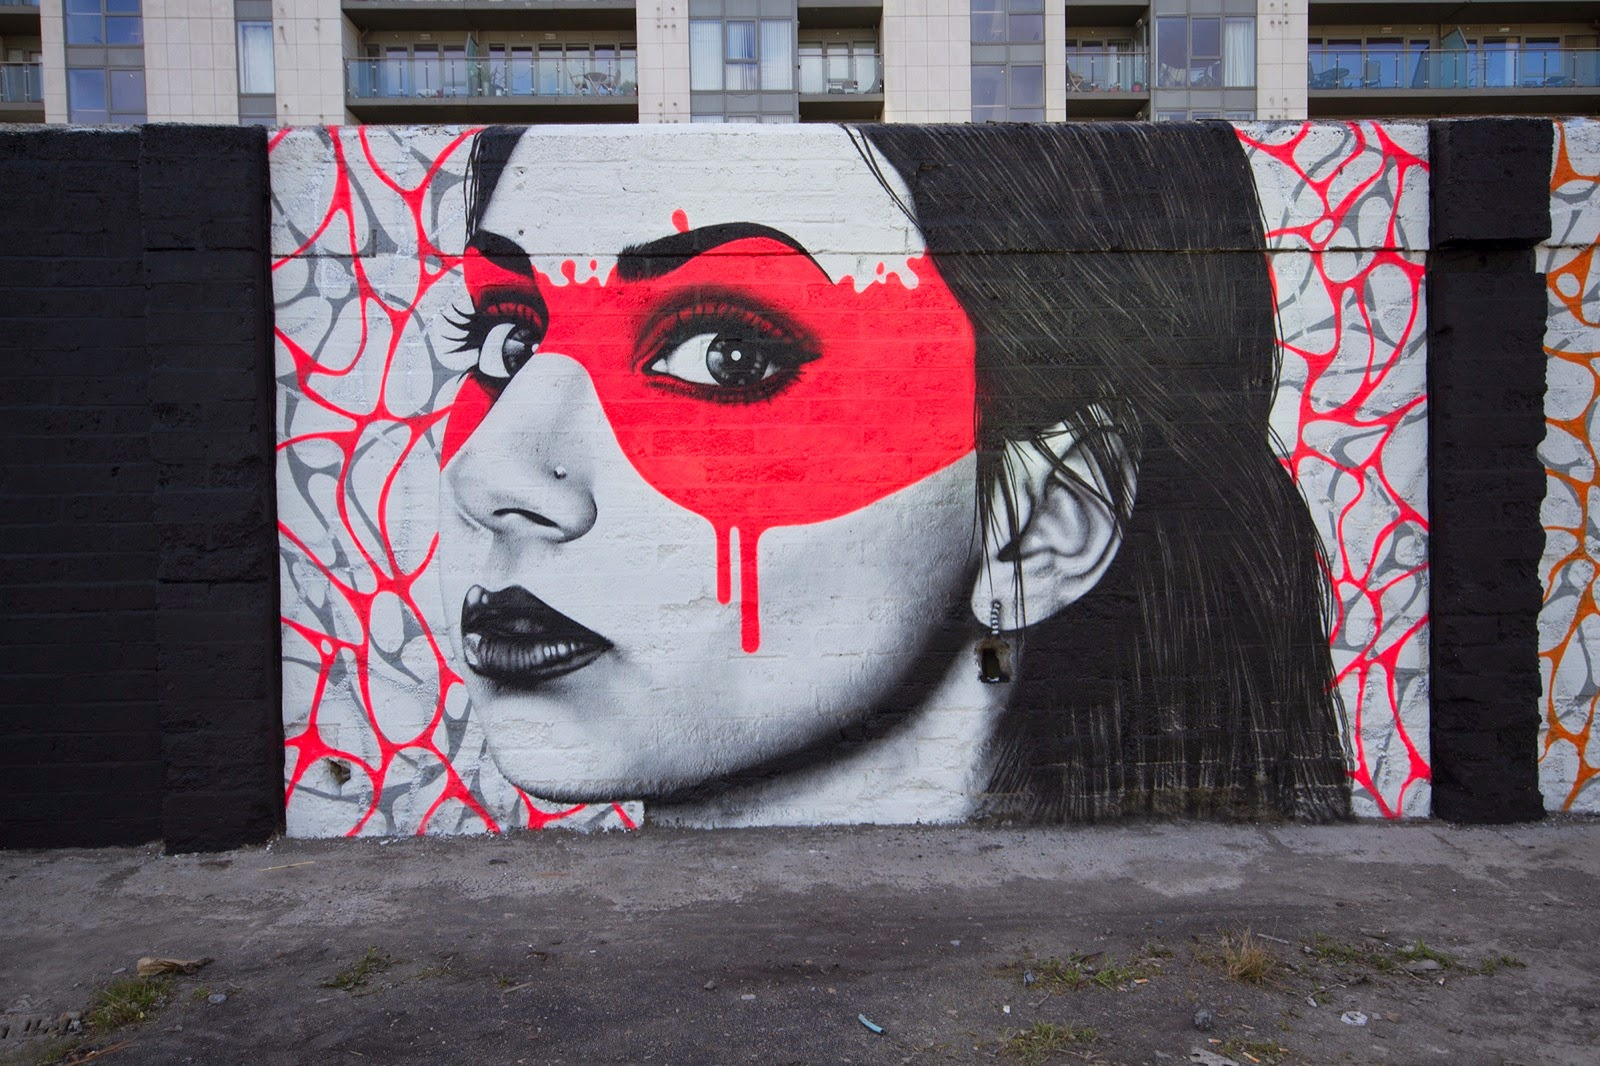 Our friend Fin DAC is currently in Ireland where he spent the last week working on this 12ft high by 150ft long wall on the streets of Dublin.